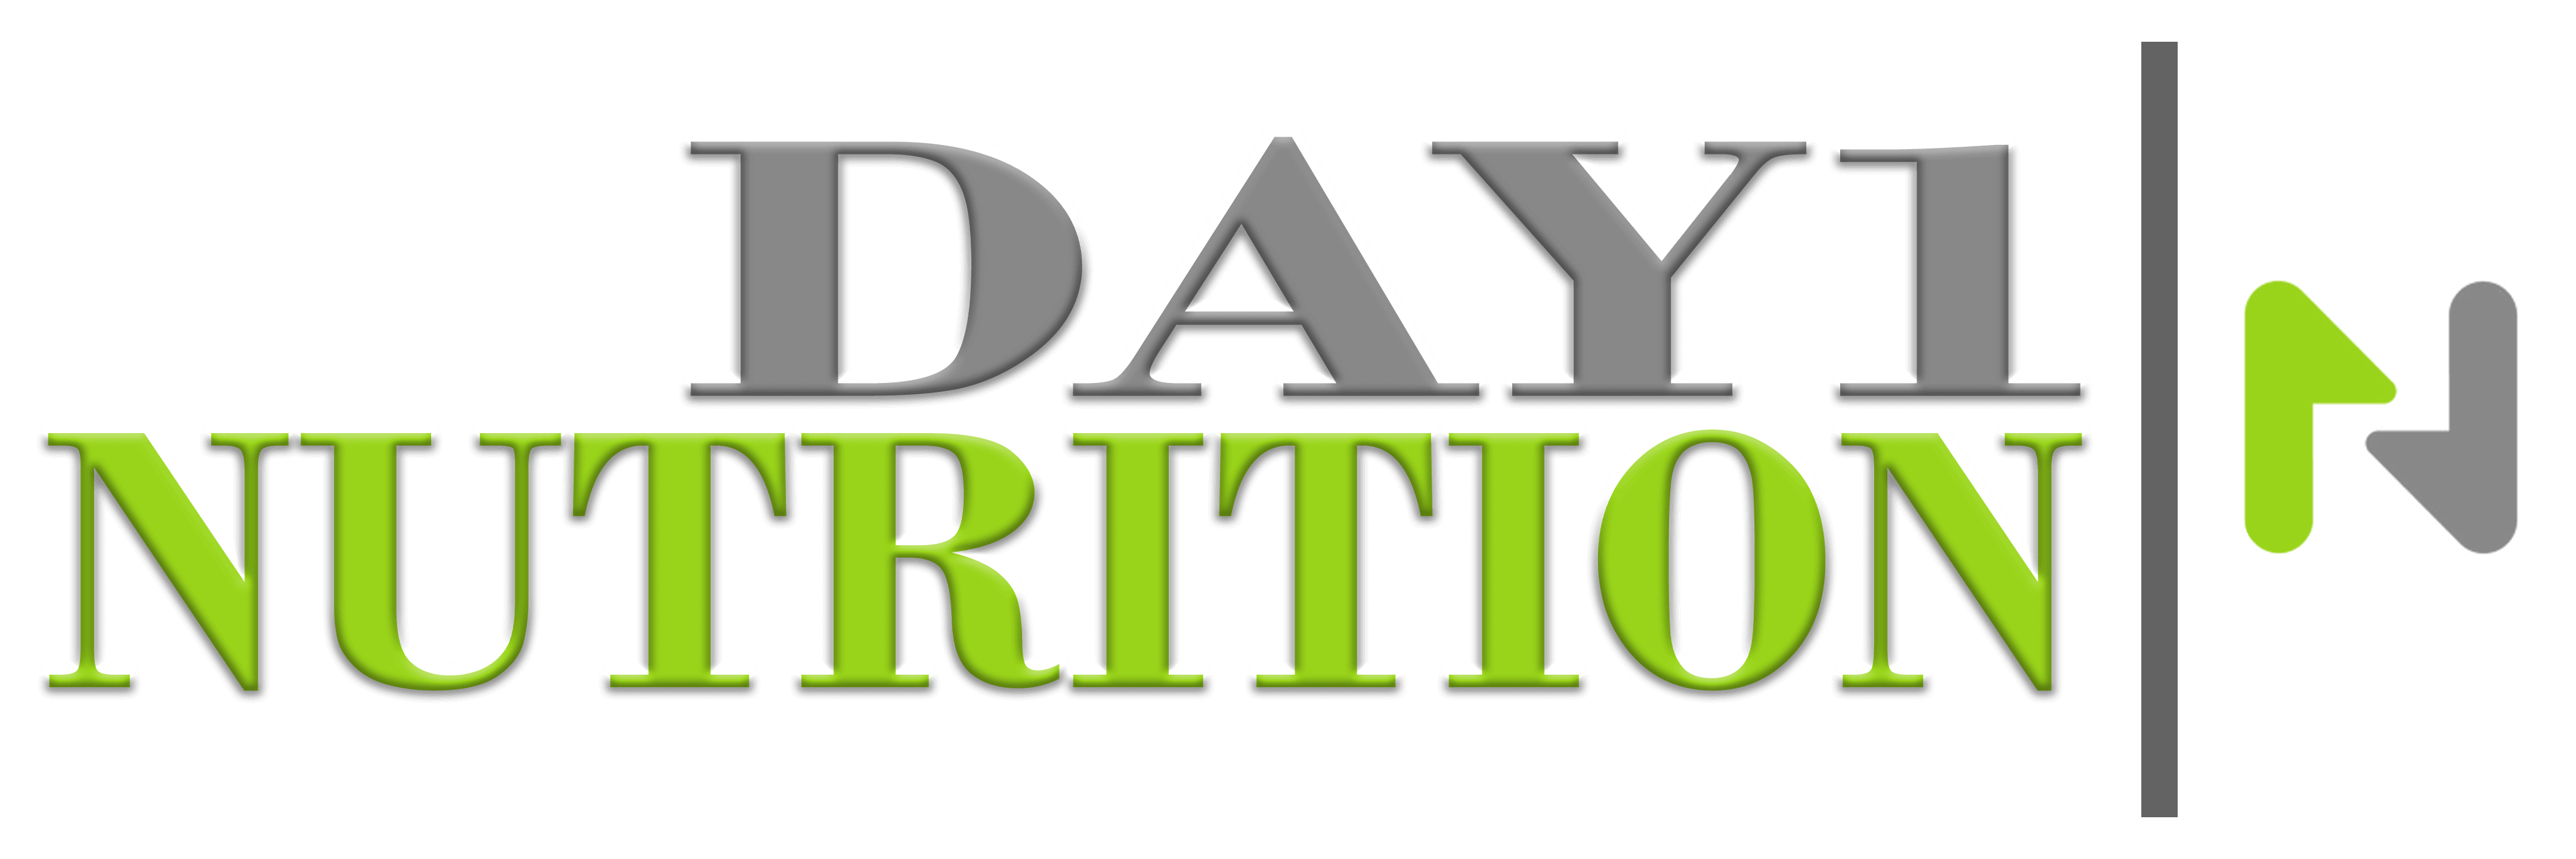 Day1nutrition